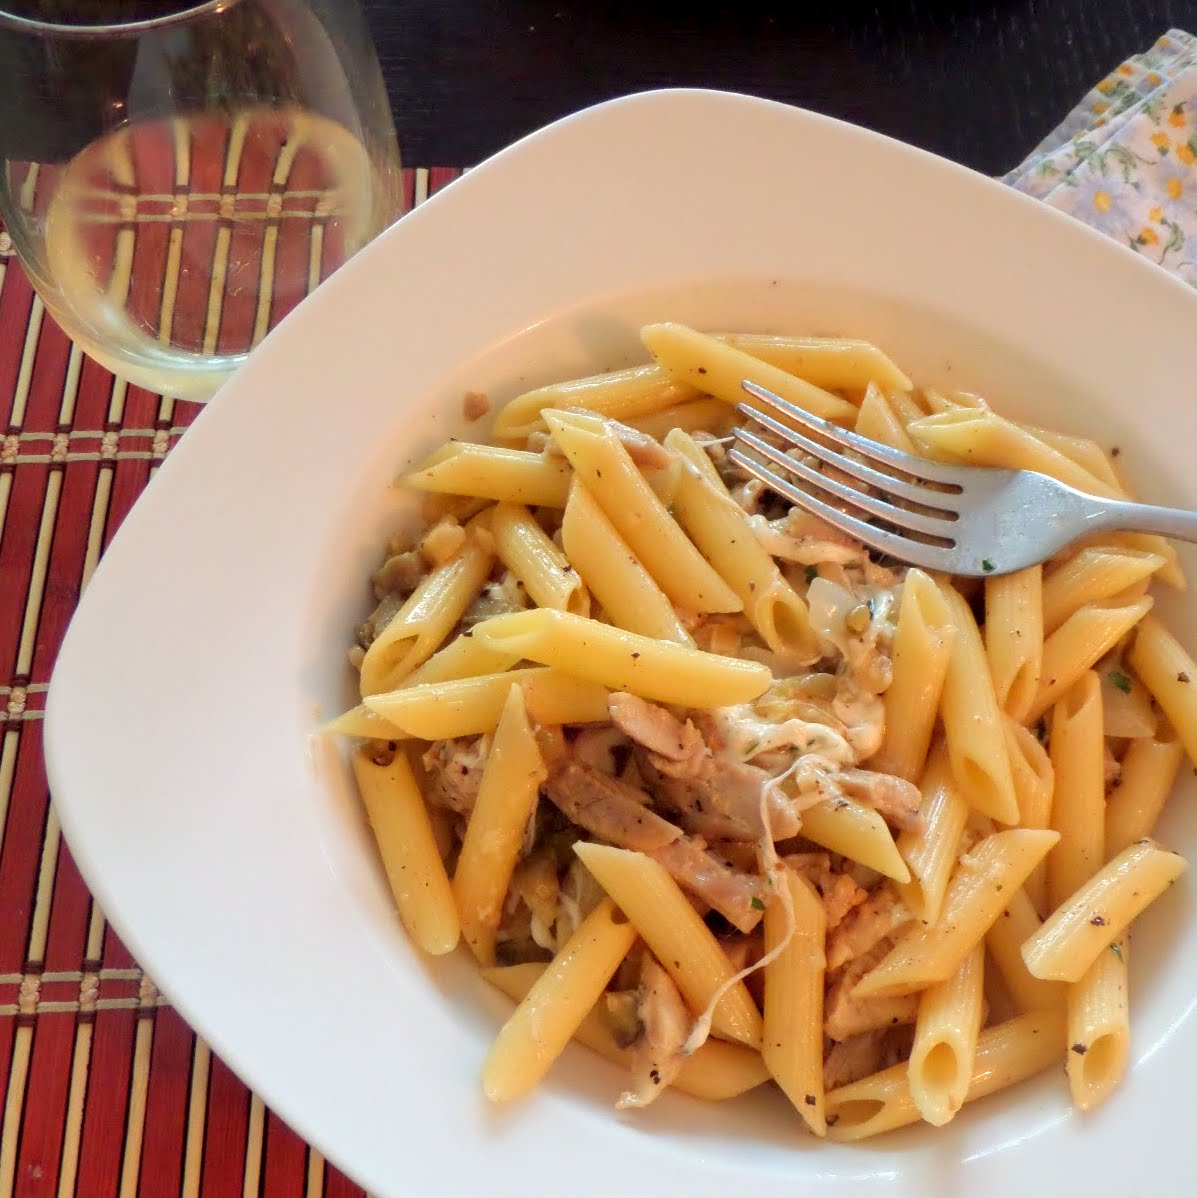 Cheesy Chicken Garlic Penne:  Penne with chicken, garlic, and cheese in a white wine sauce